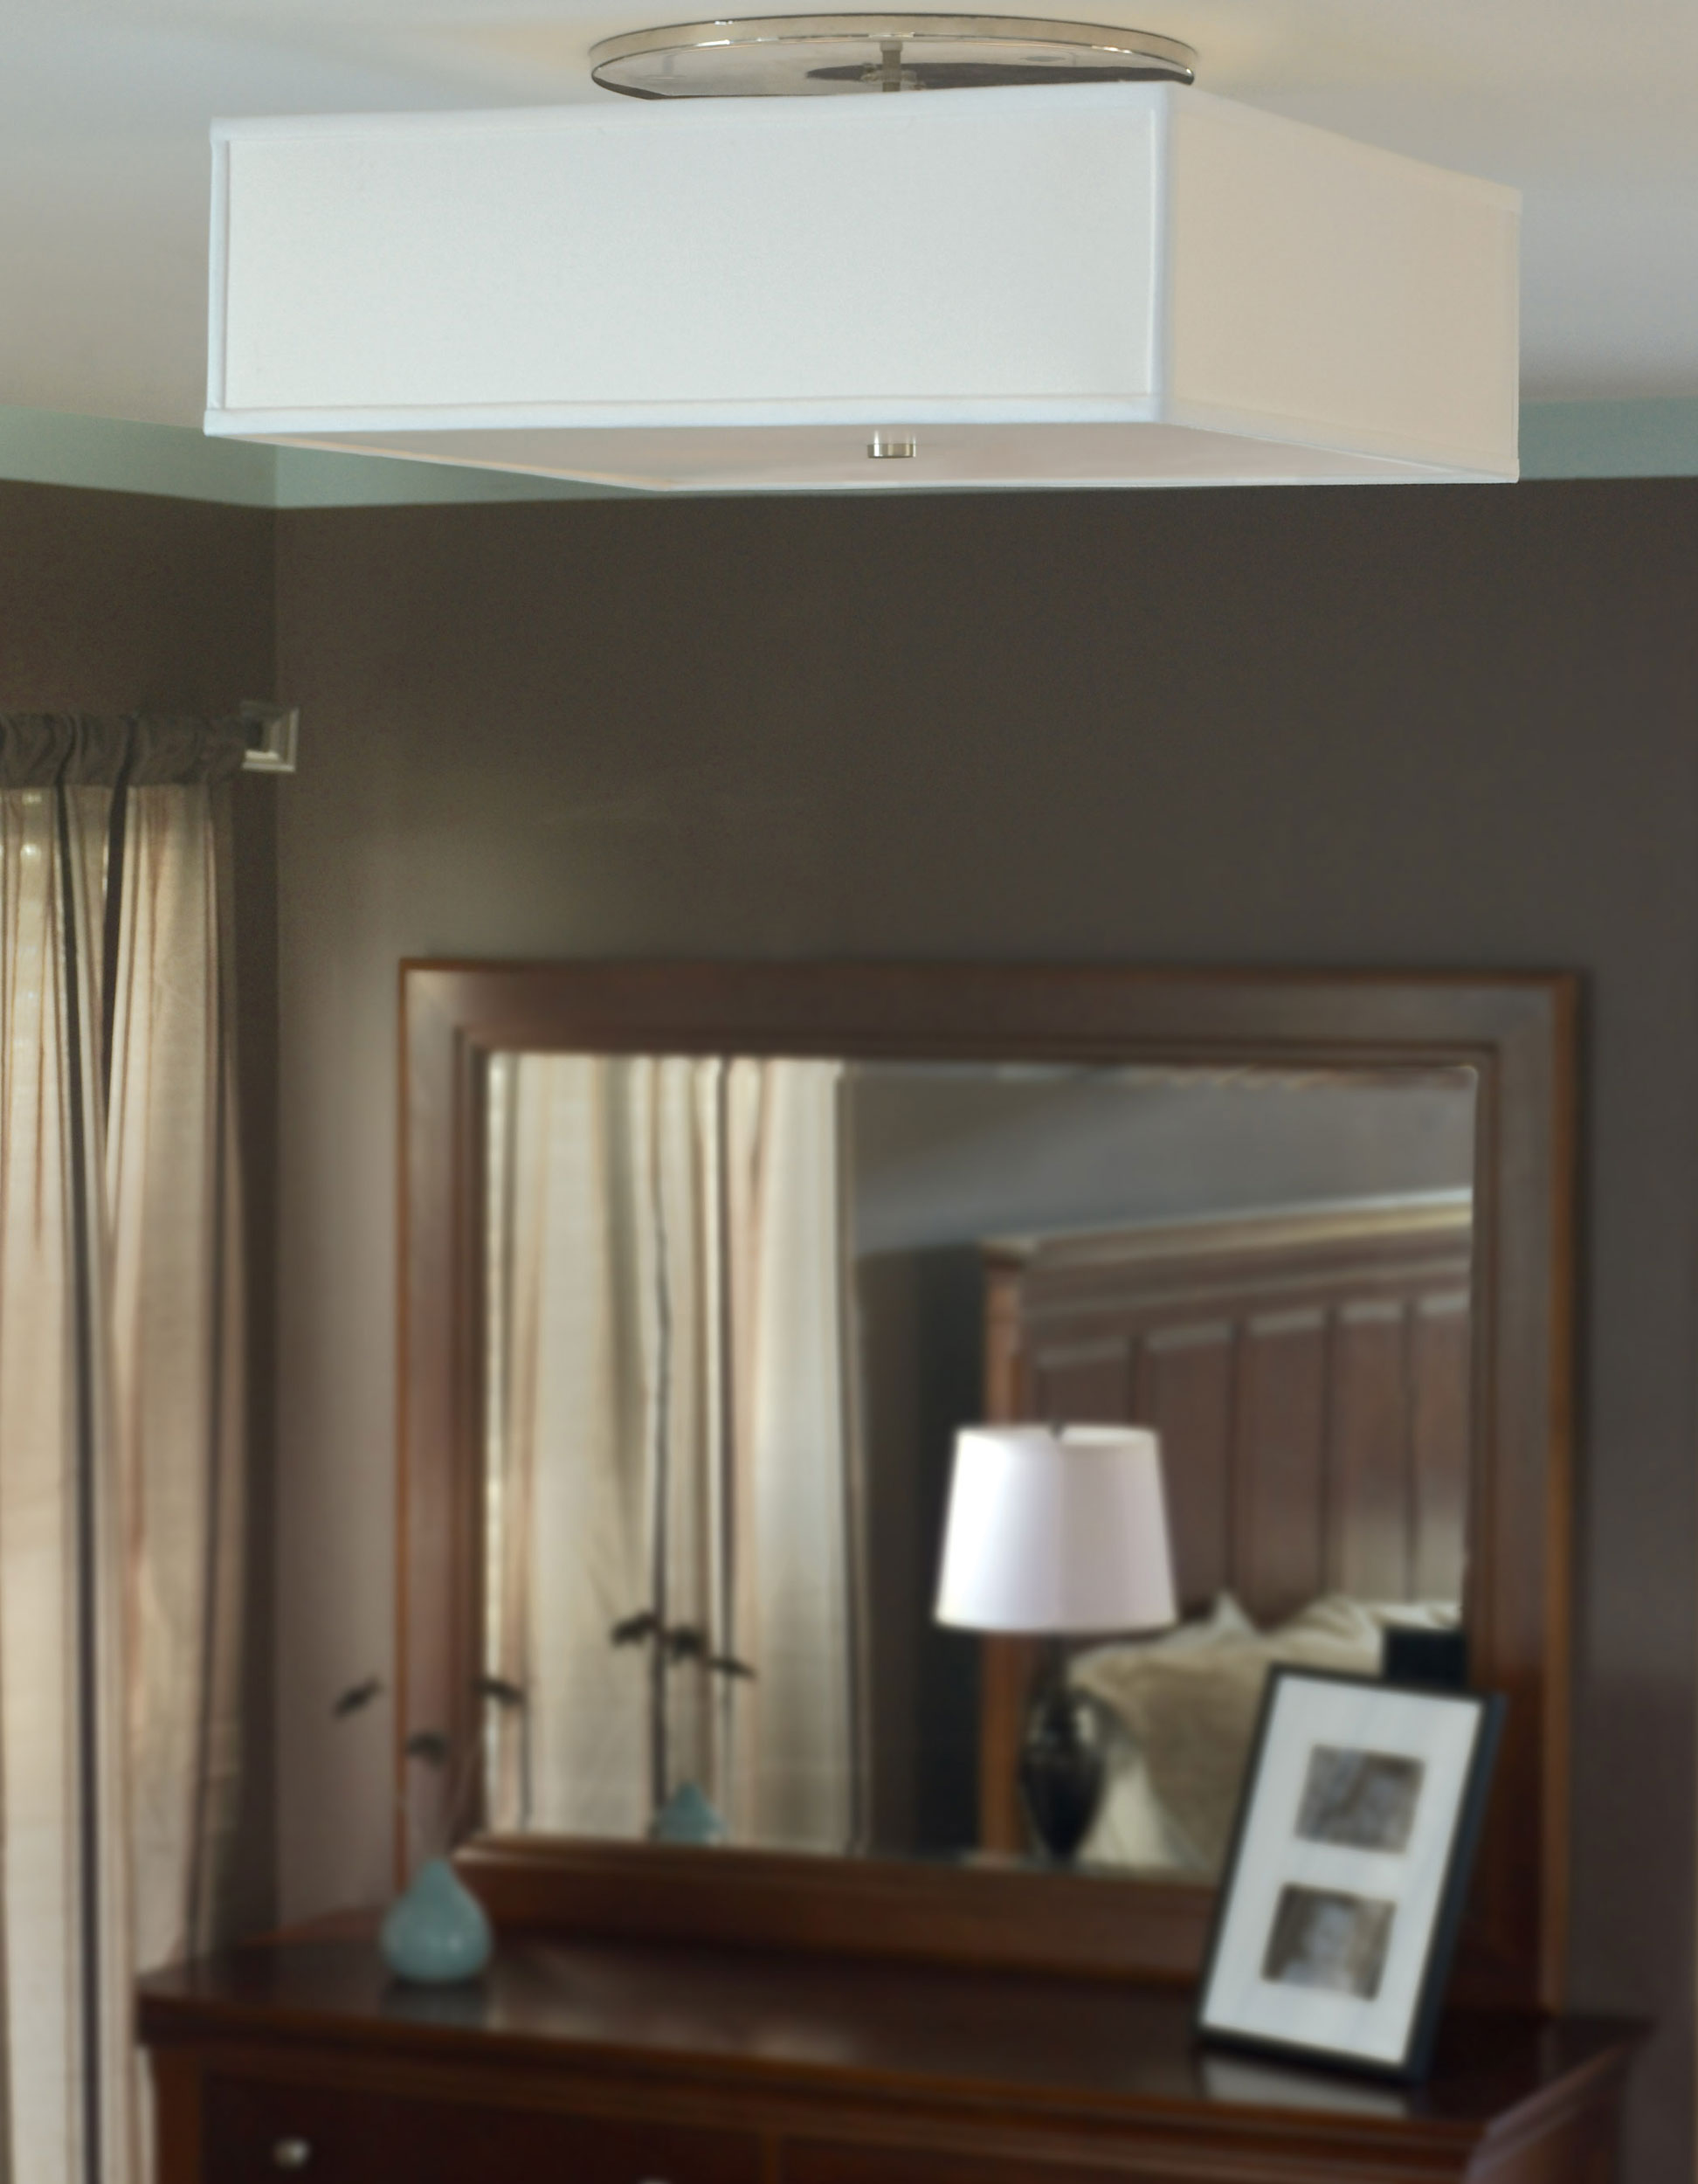 Chambers Ceiling Light by Tech Lighting Chambers Ceiling Light by Tech  Lighting  a  Installation Gallery   Bedroom Lighting. Install Mirror Bedroom Ceiling. Home Design Ideas